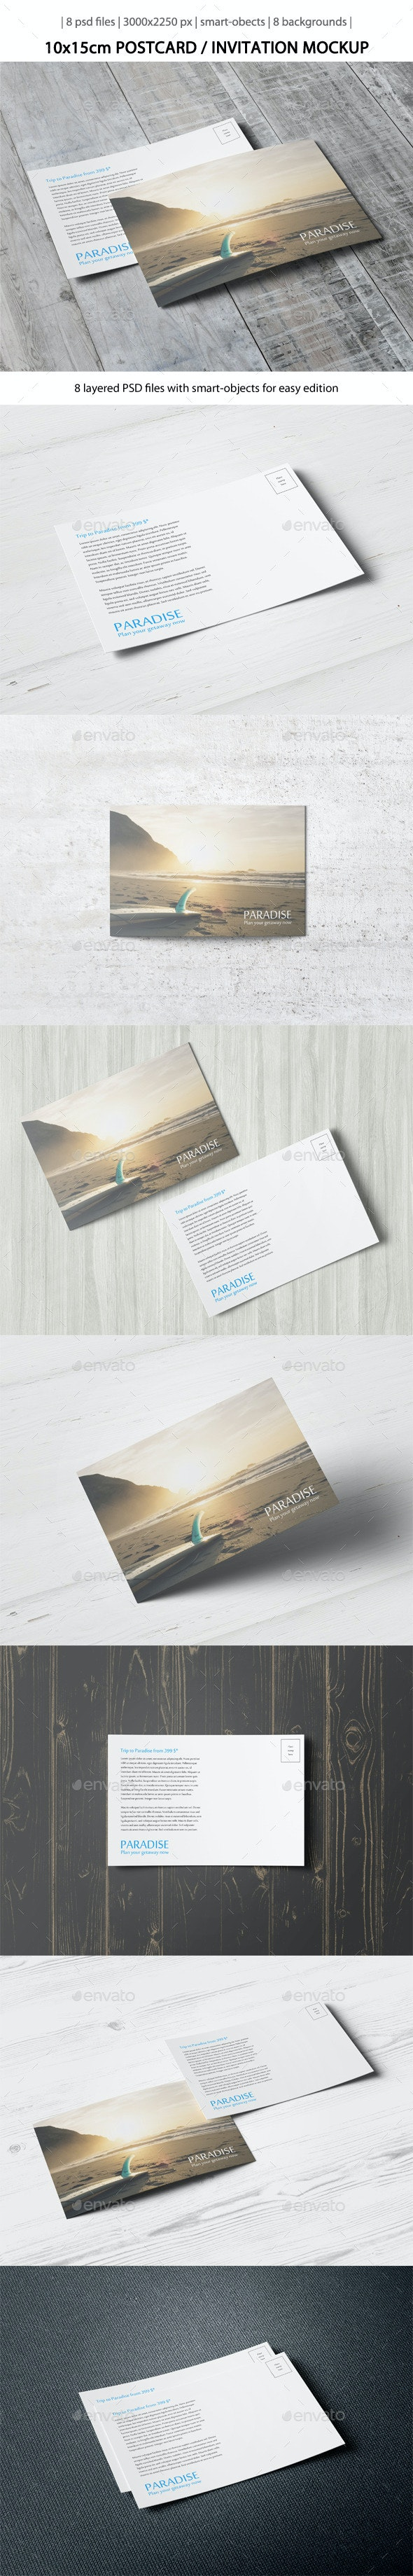 Postcard / Invitation Mock-Up [10x15cm] - Miscellaneous Print